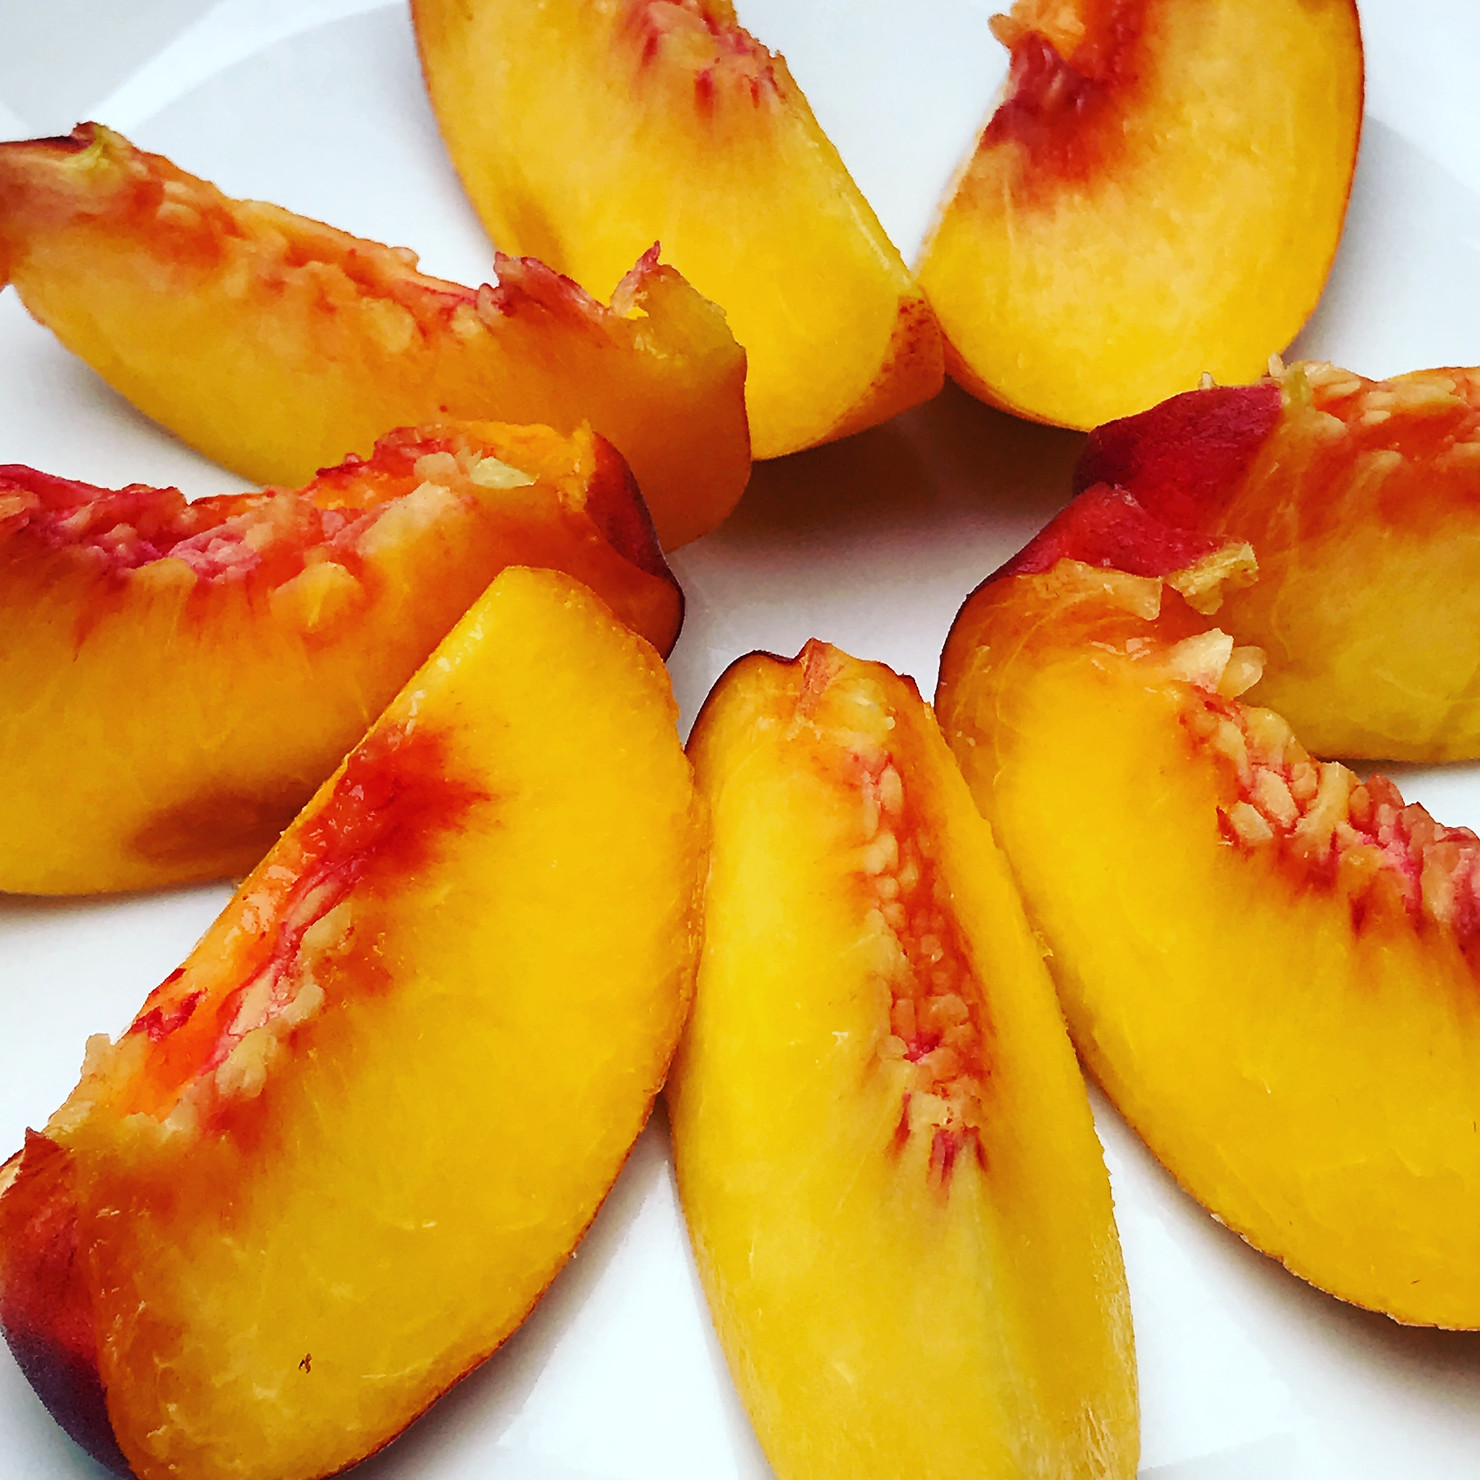 One of our delicious home grown peaches